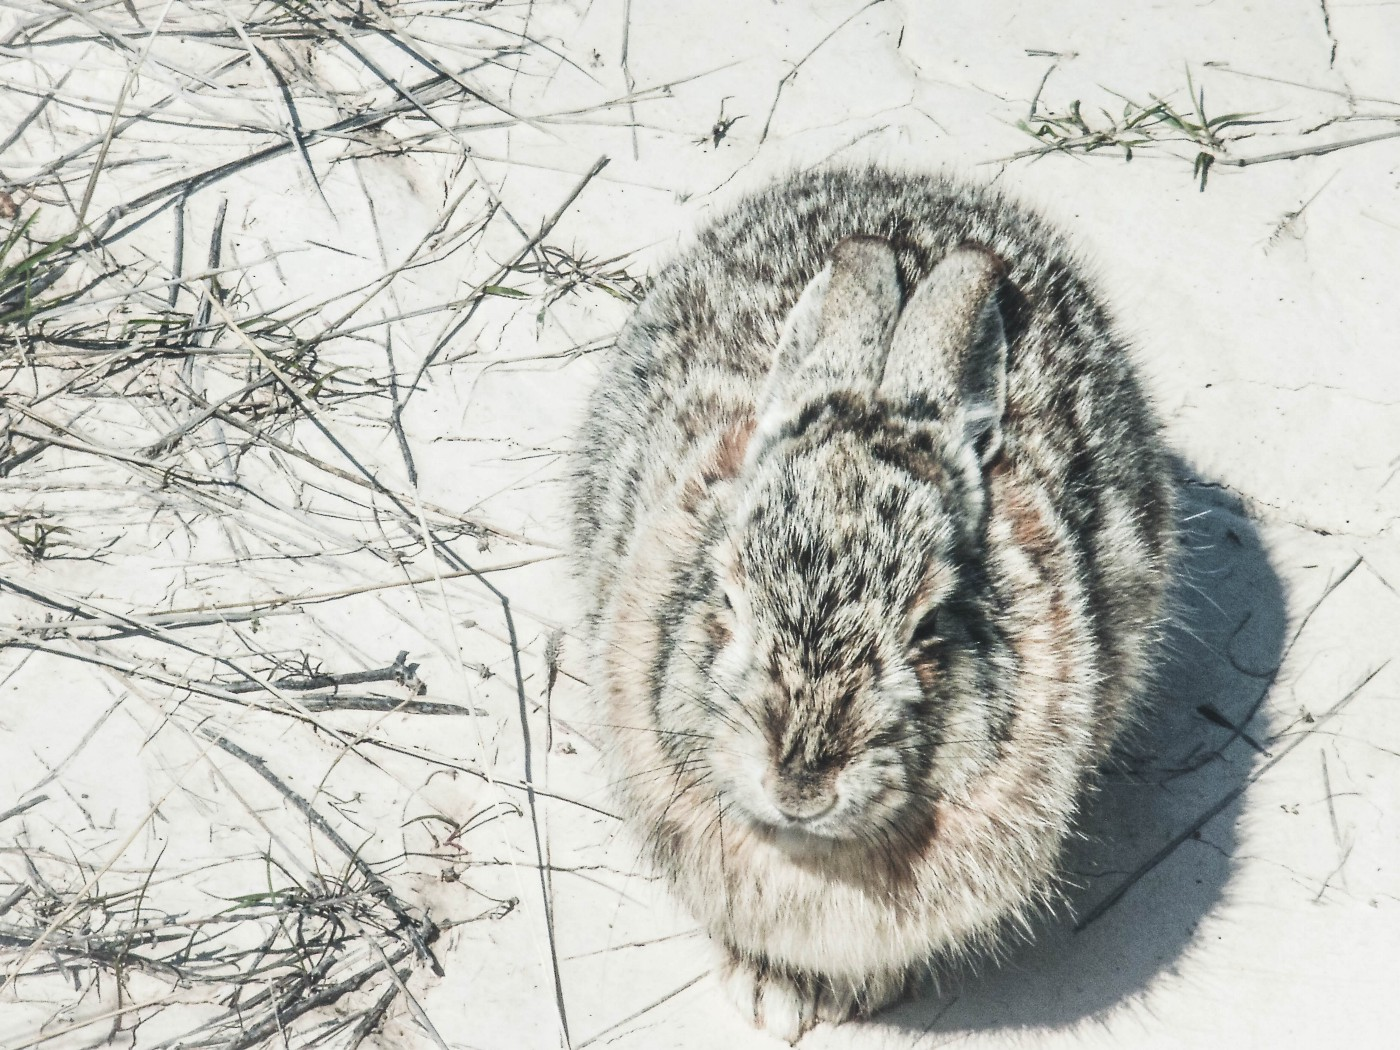 Bunny laying curled up in snow.